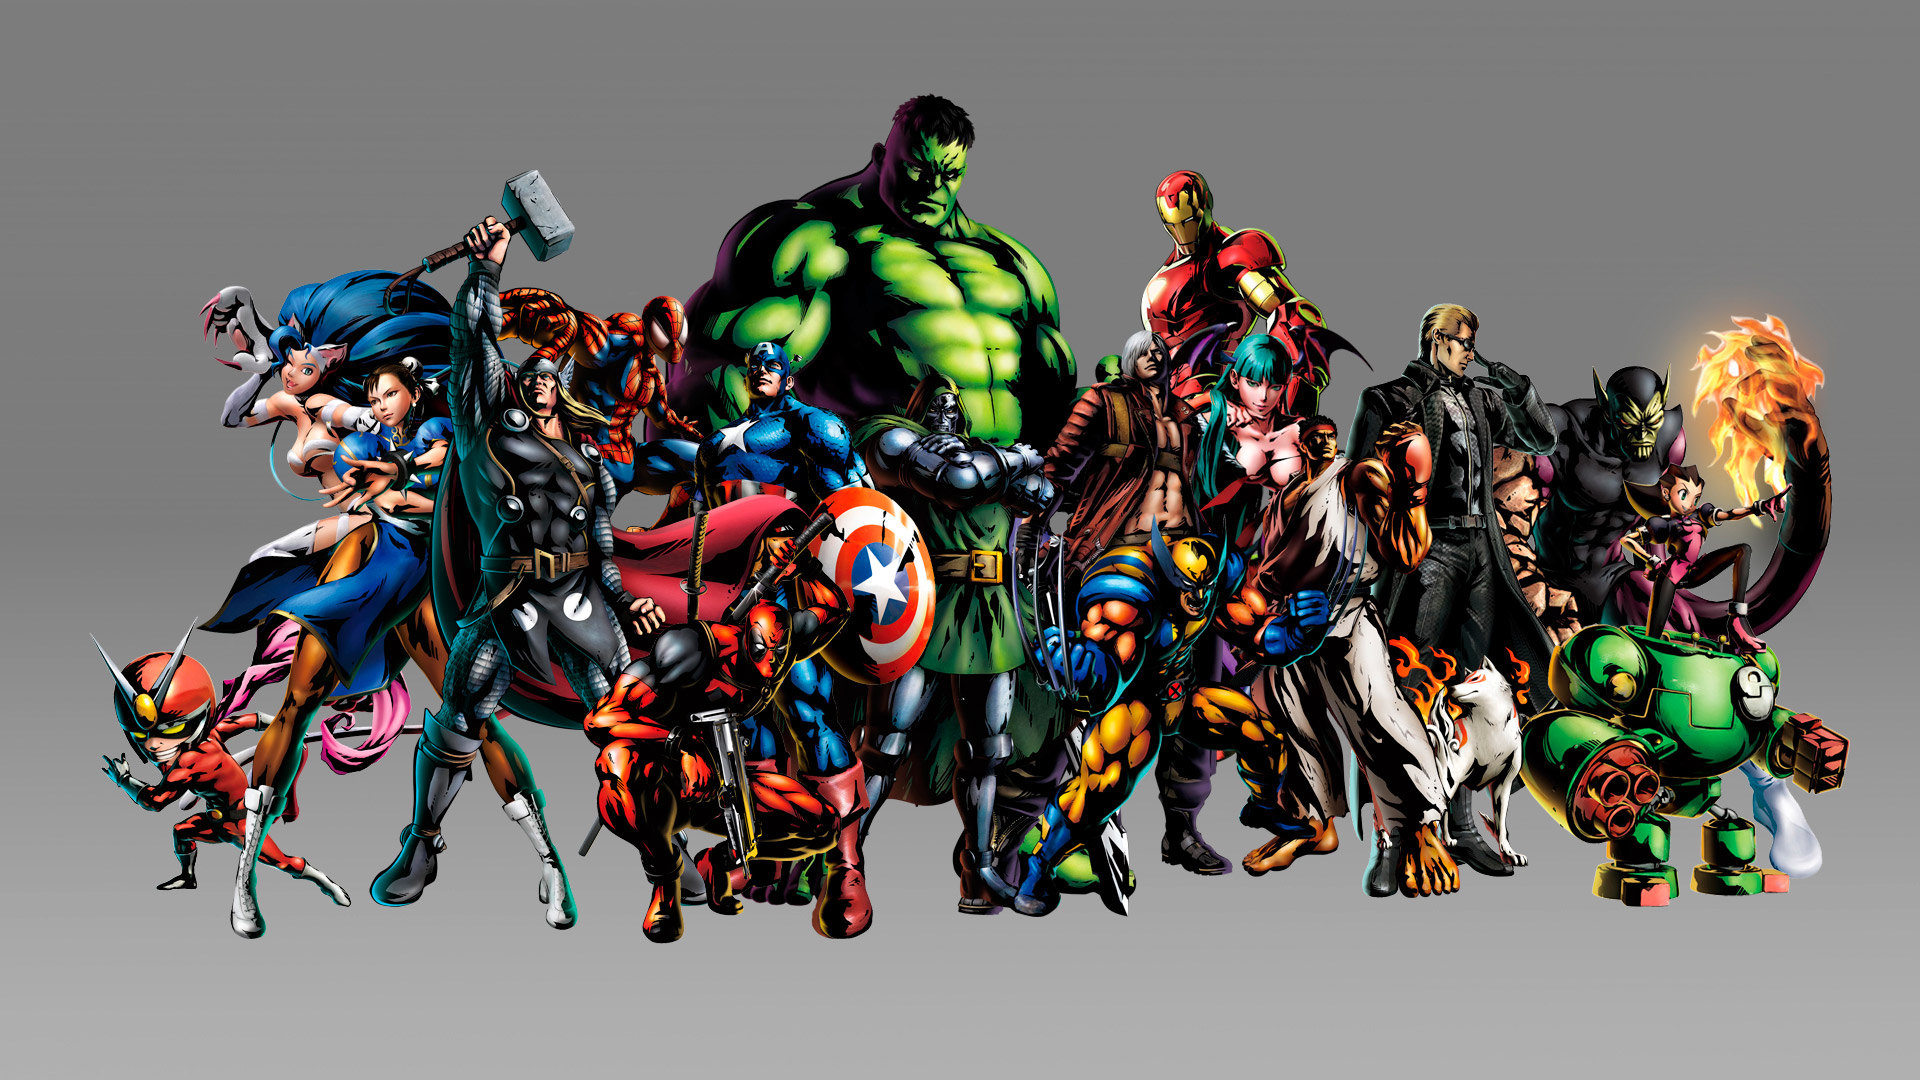 48 Marvel Wallpaper For Desktop On Wallpapersafari